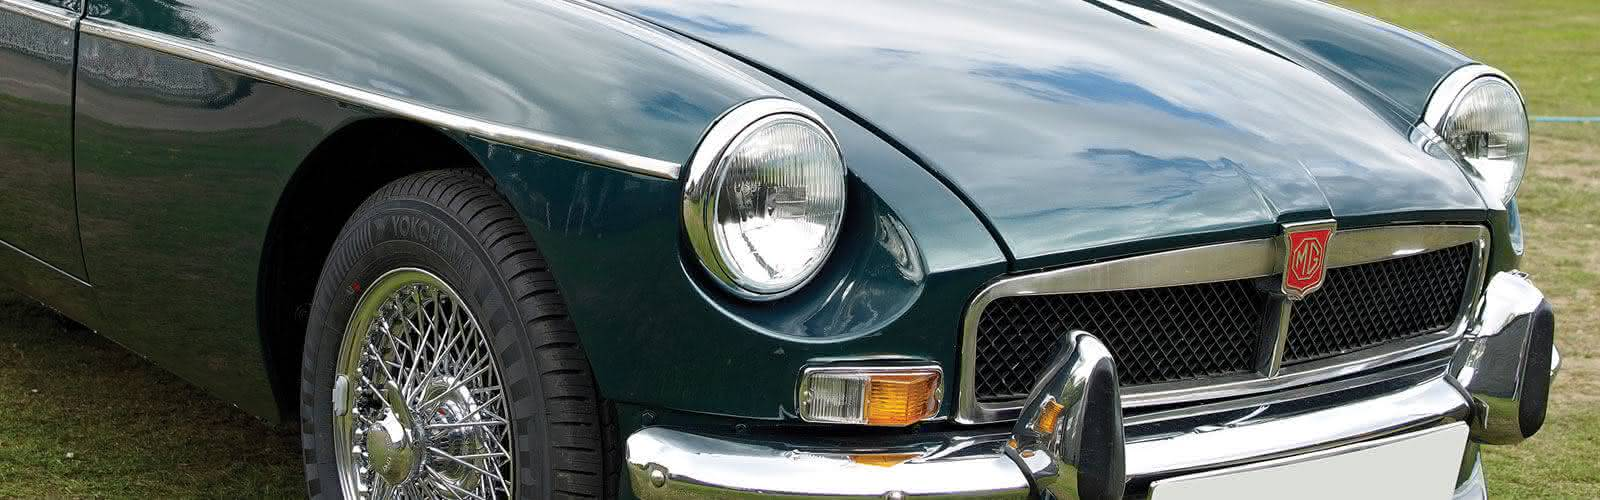 Classic Car Insurance: Your Leading Classic Car Specialists